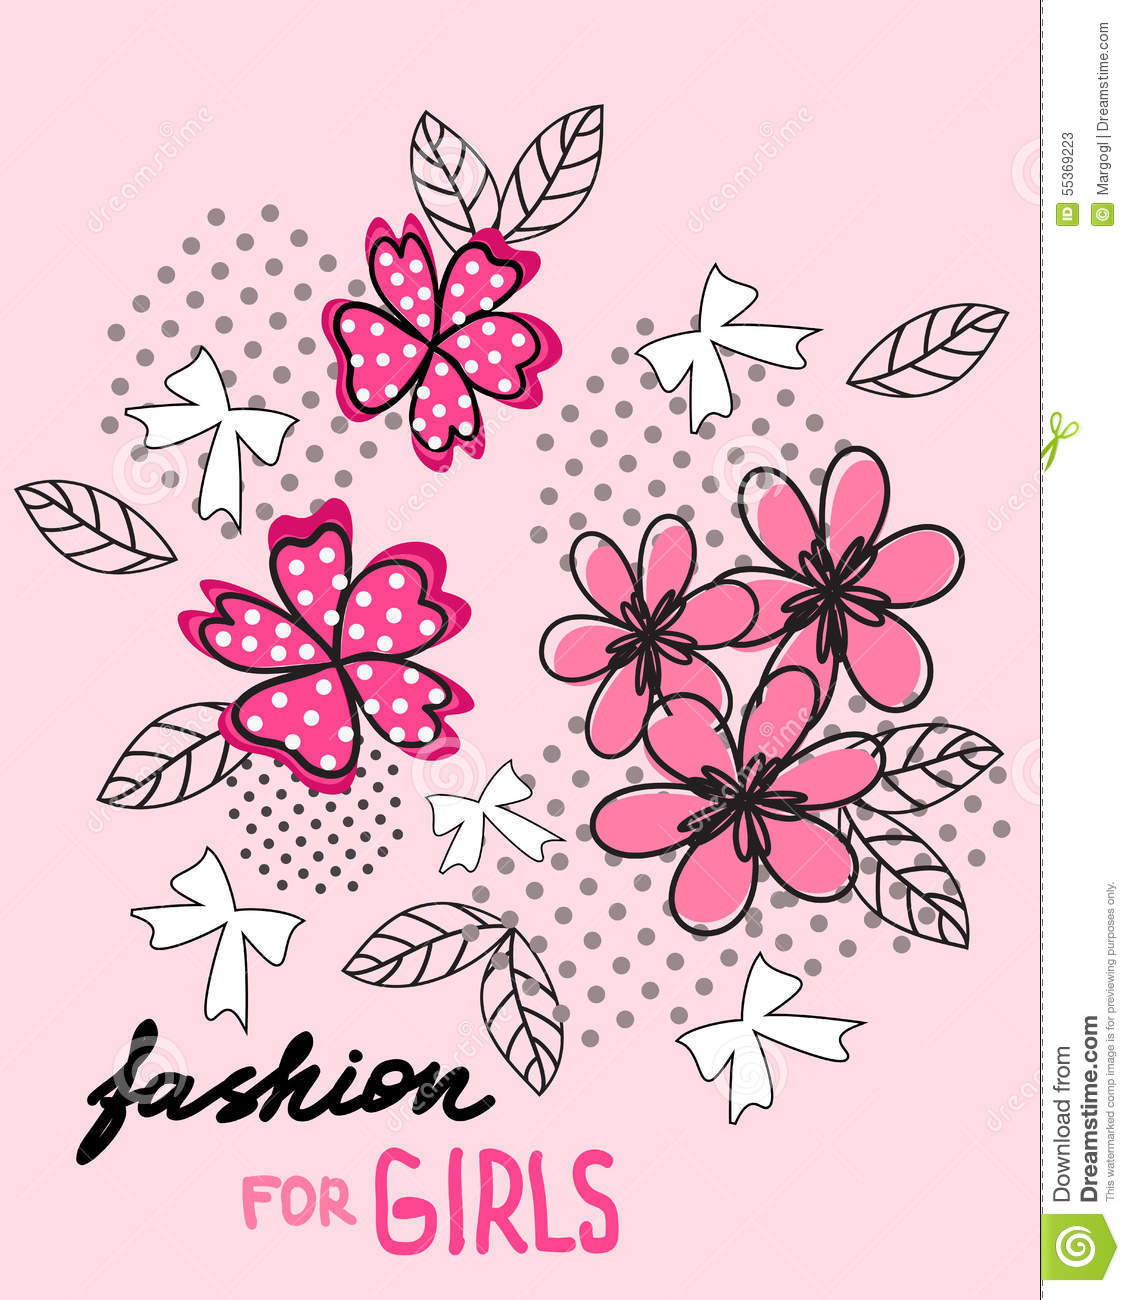 Design t shirt girl - Flower And Bow T Shirt Design Fashion For Girls